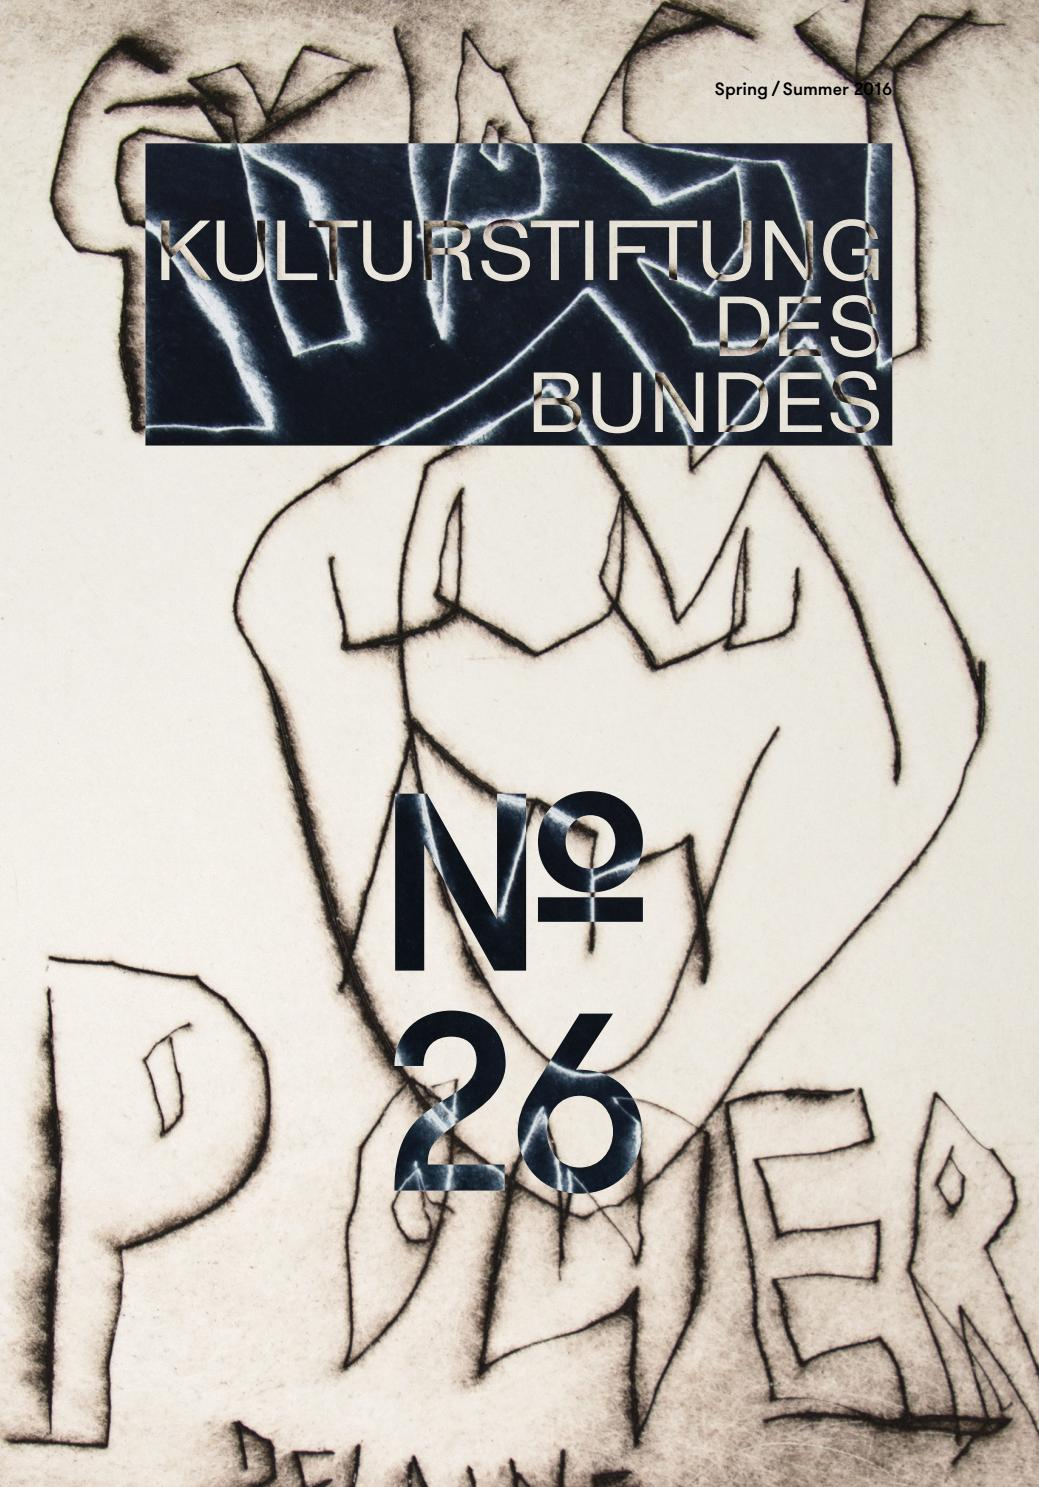 Magazine 26 Of The Federal Cultural Foundation Kulturstiftung